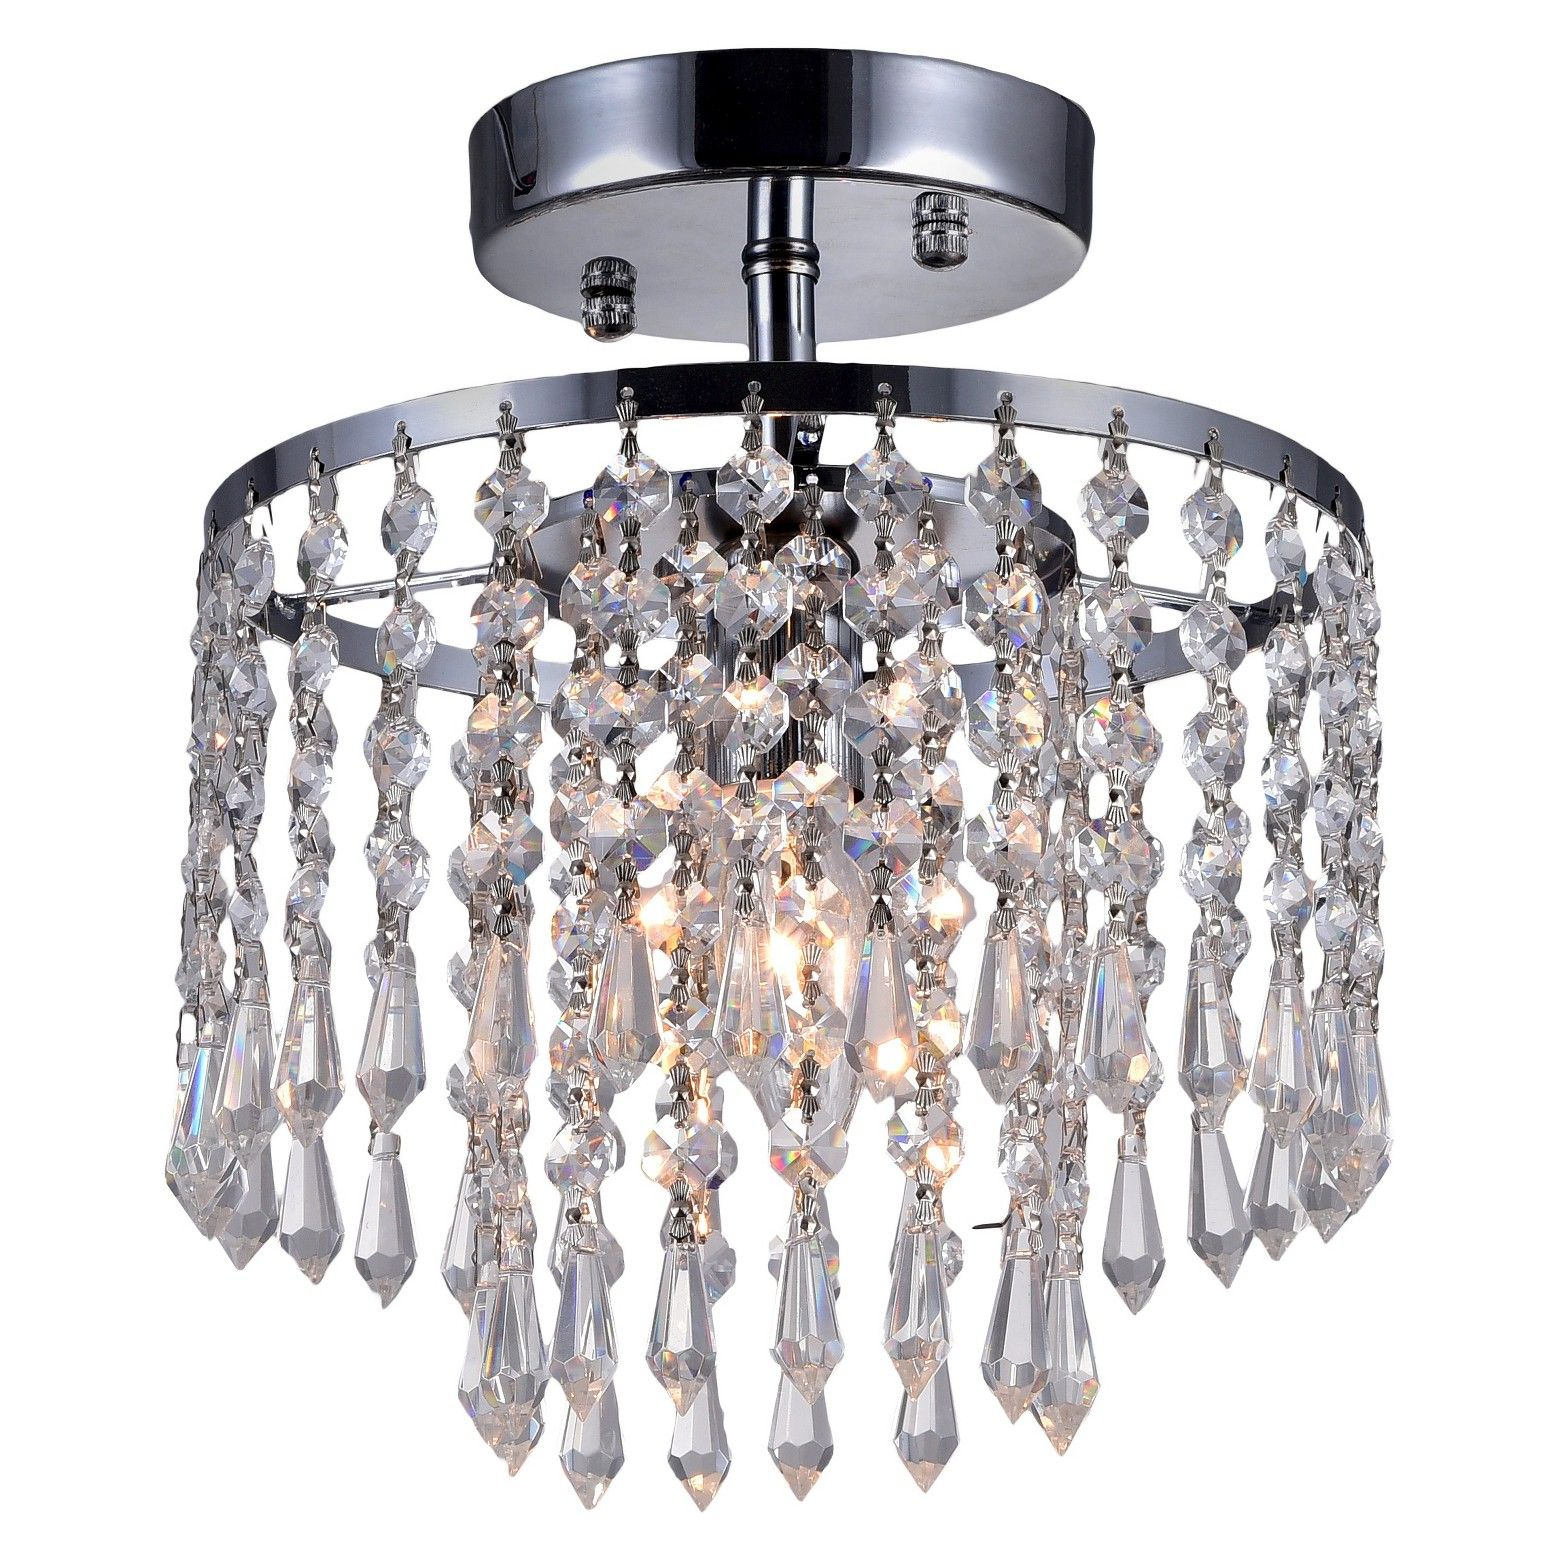 This Warehouse Of Tiffany Silver Ceiling Light Amps Up Its Light Output By Bouncing The Light Off Ceiling Lights Warehouse Of Tiffany Chandelier Ceiling Lights